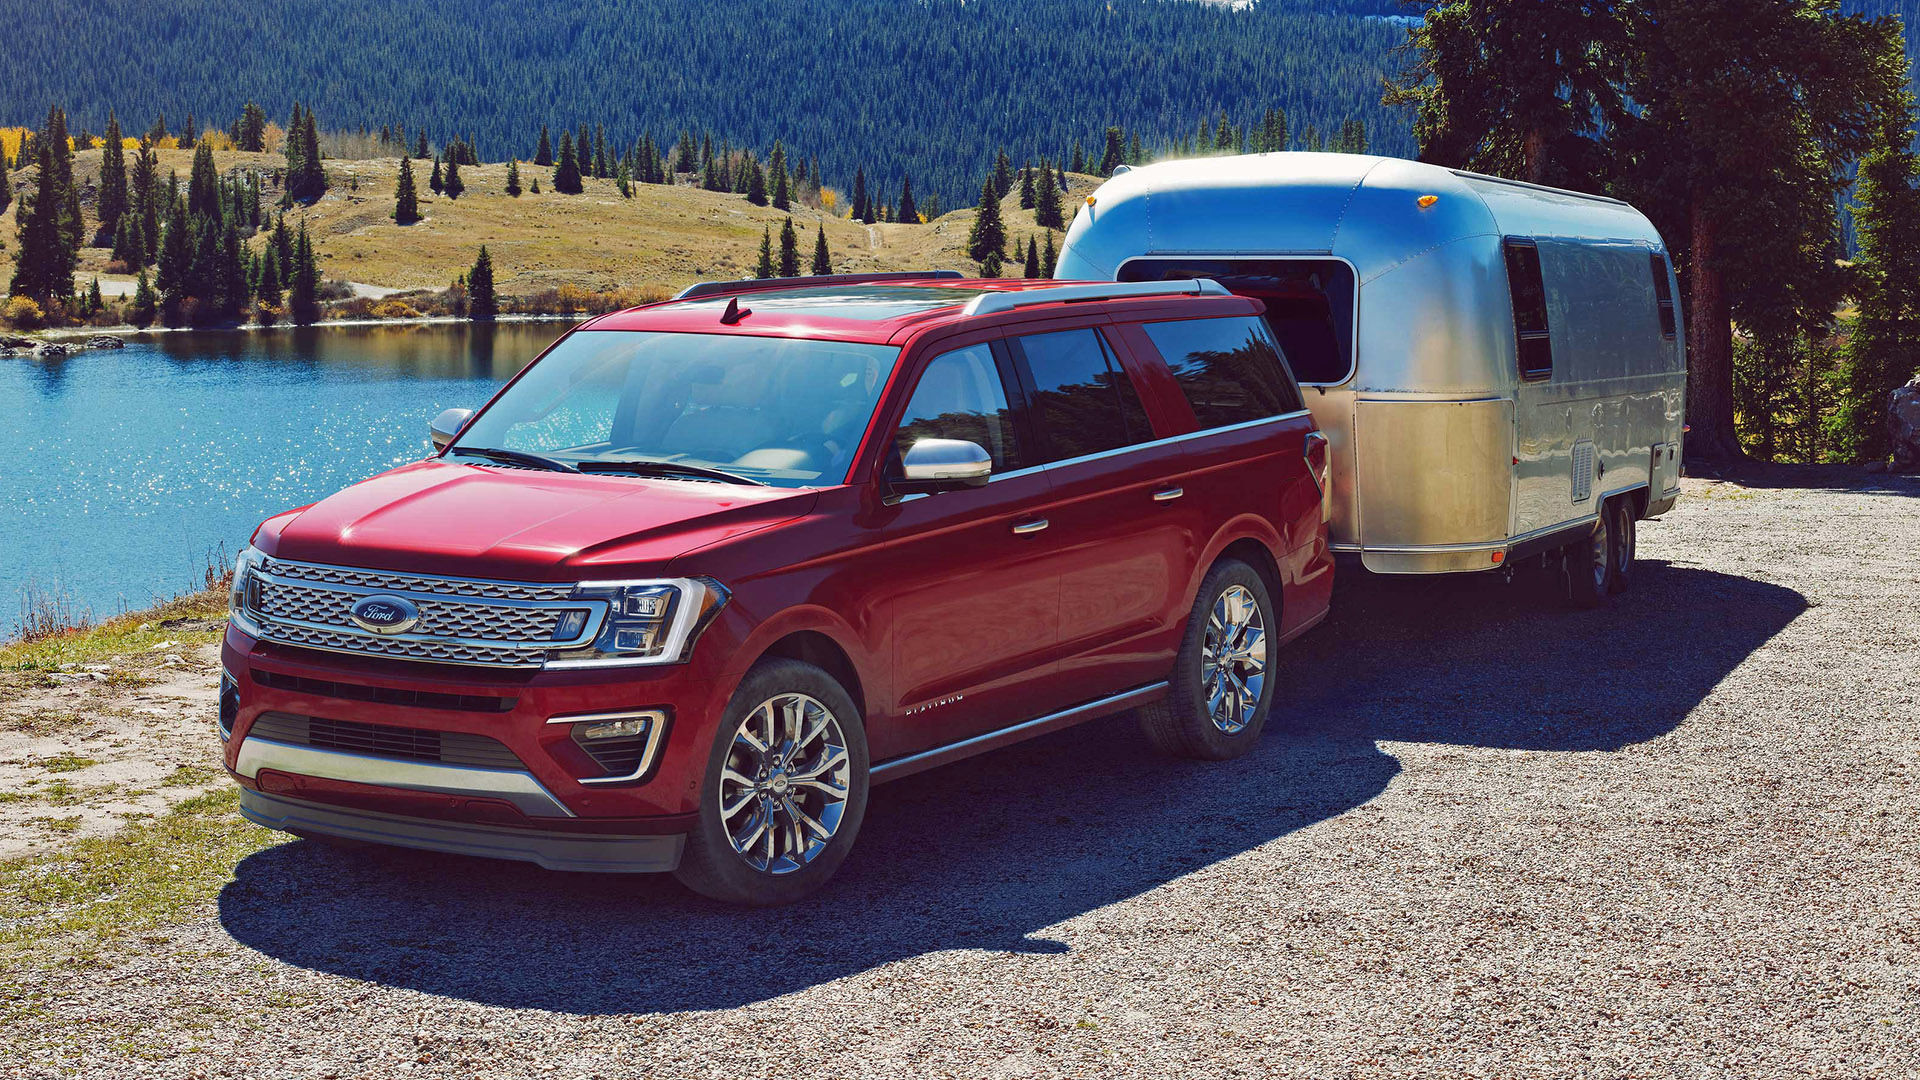 2018 Ford Expedition Vs 2018 Chevy Tahoe Upcomingcarshq Com